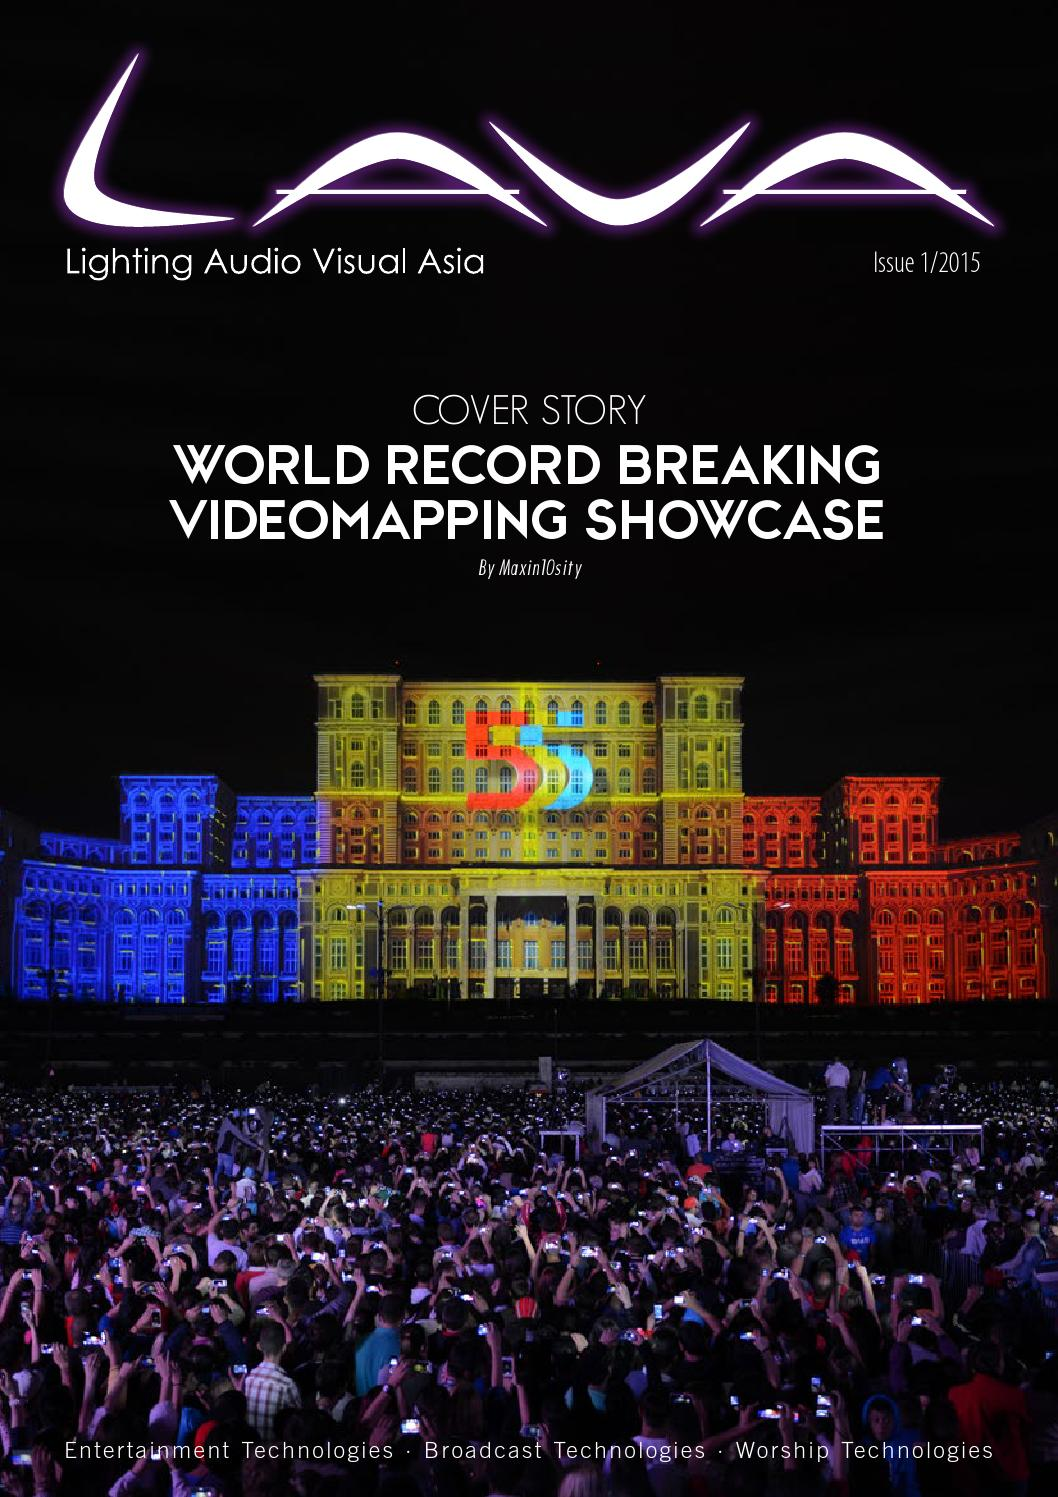 Lava Vol 1 2015 By Lighting Audio Visual Asia Issuu Of Kes 400a Laser Diode Project Failure Cod